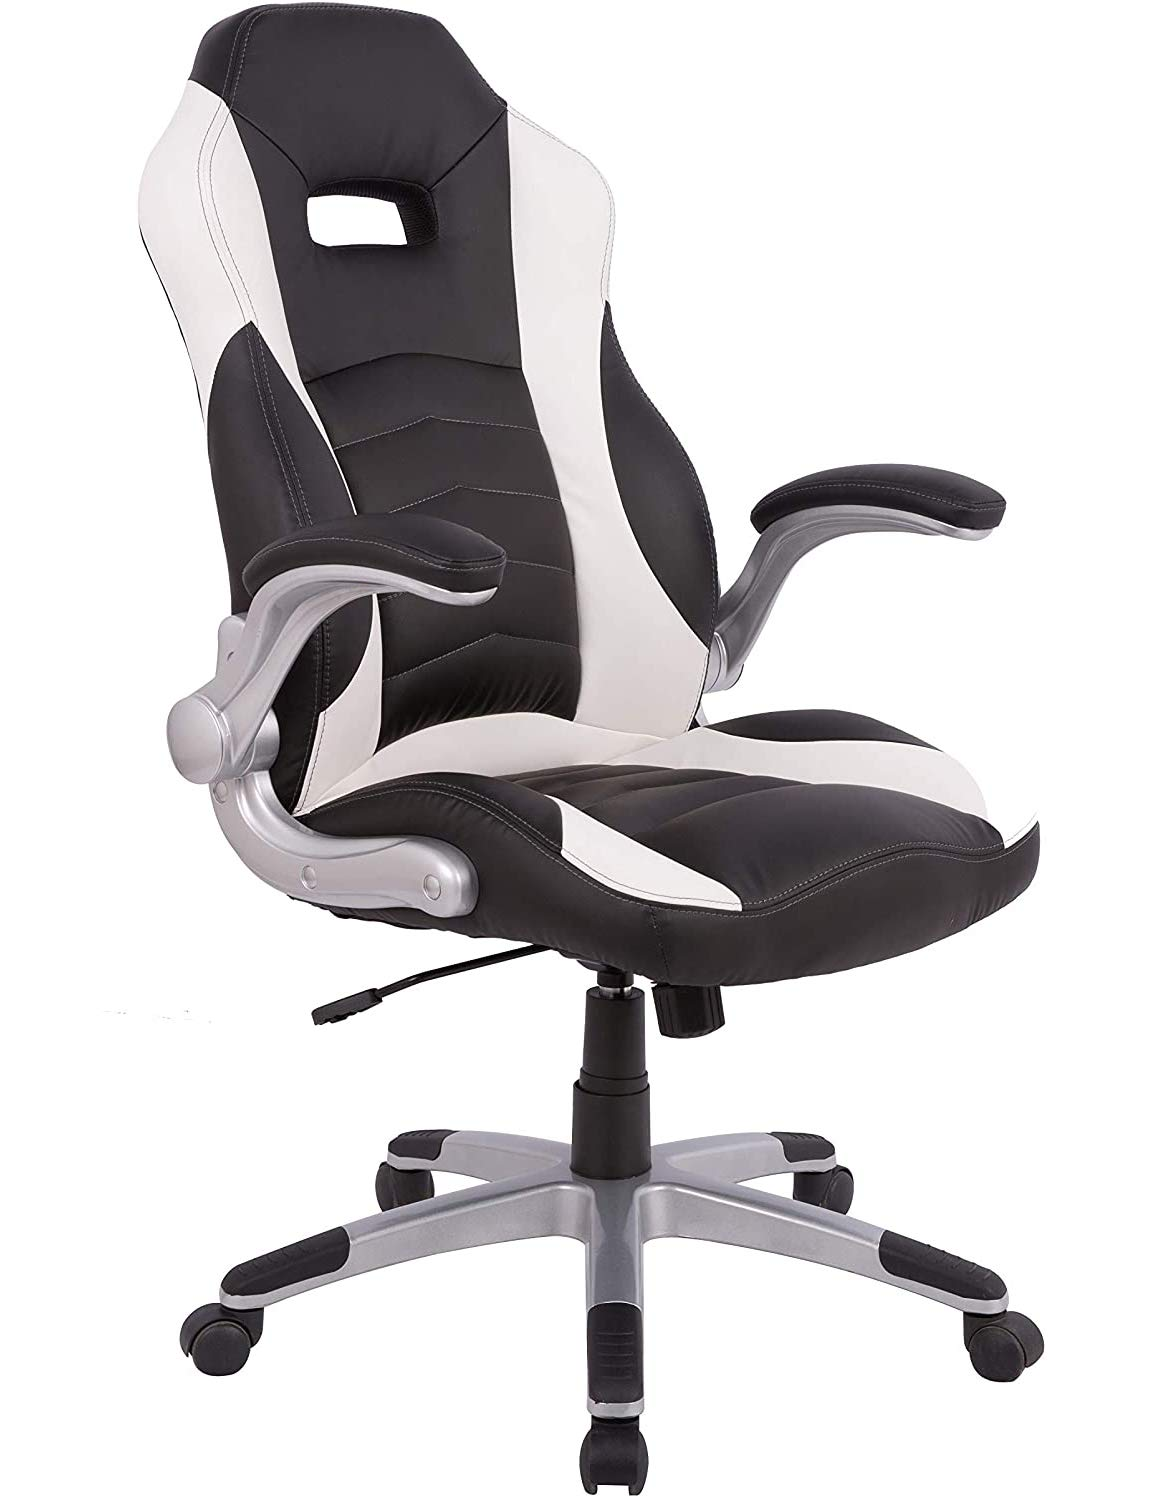 PC Gaming Chair Racing Office Computer Game Chair Ergonomic Office Chair Desk Chair with Adjustable Height and Armrest, PU Leather Executive High Back Computer Chair for Adults Men Women